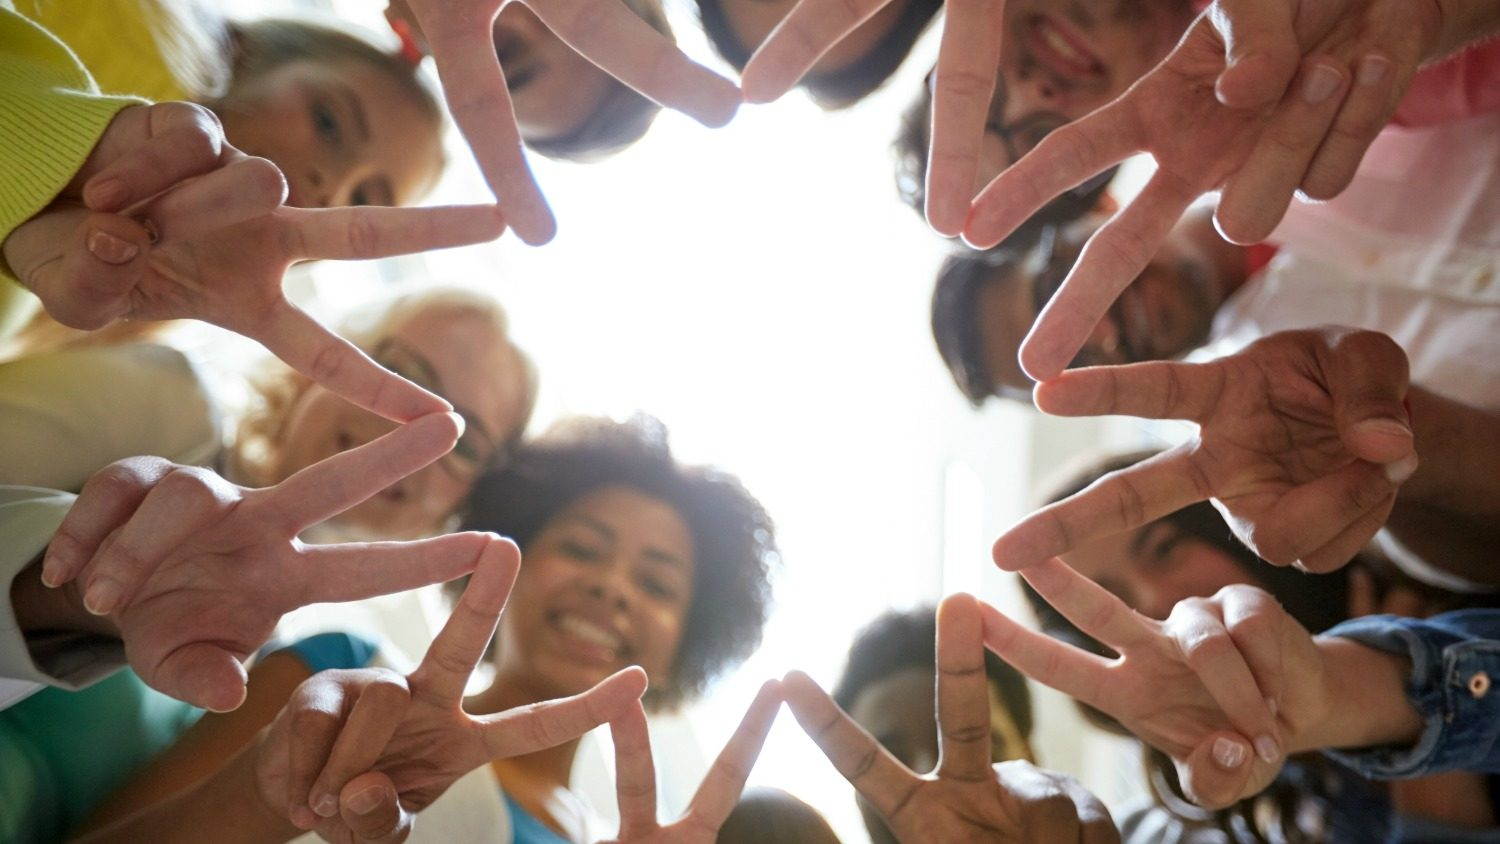 Diverse people in a circle with peace signs.